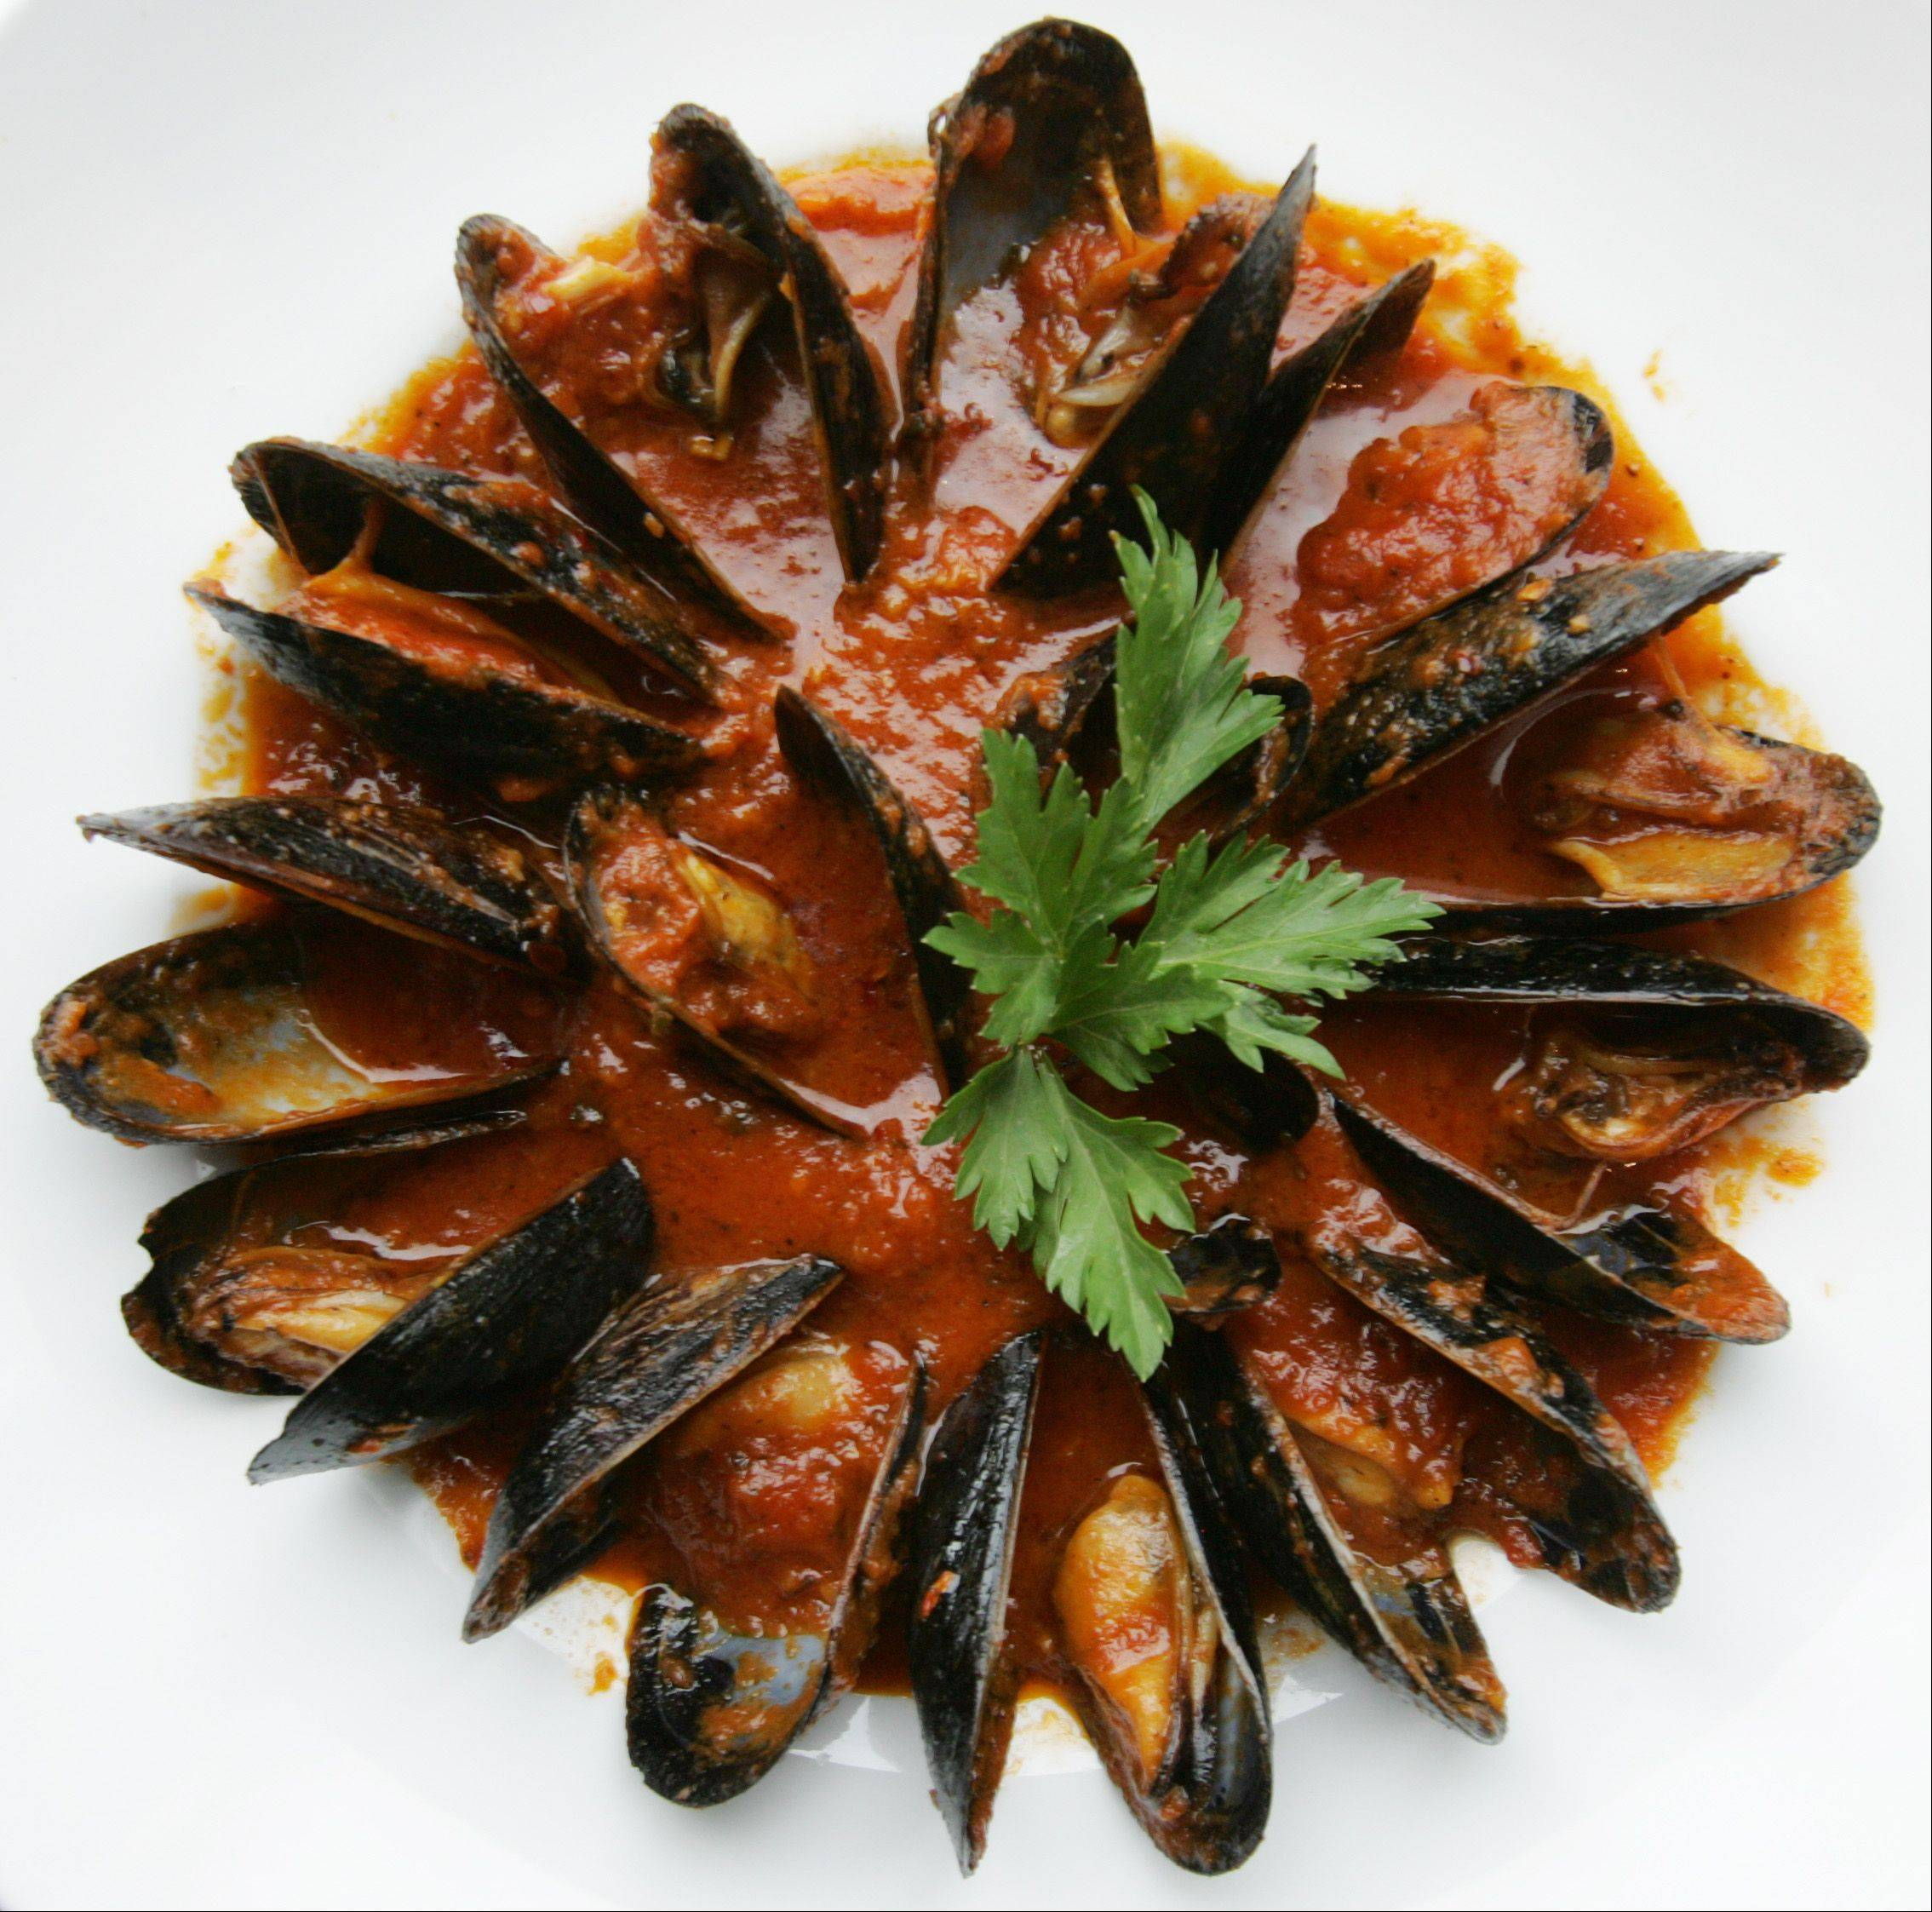 Mussels in white wine tomato sauce with pancetta and shallots are a popular way to start a meal at Marzano's Wood Fired Italian restaurant in McHenry.